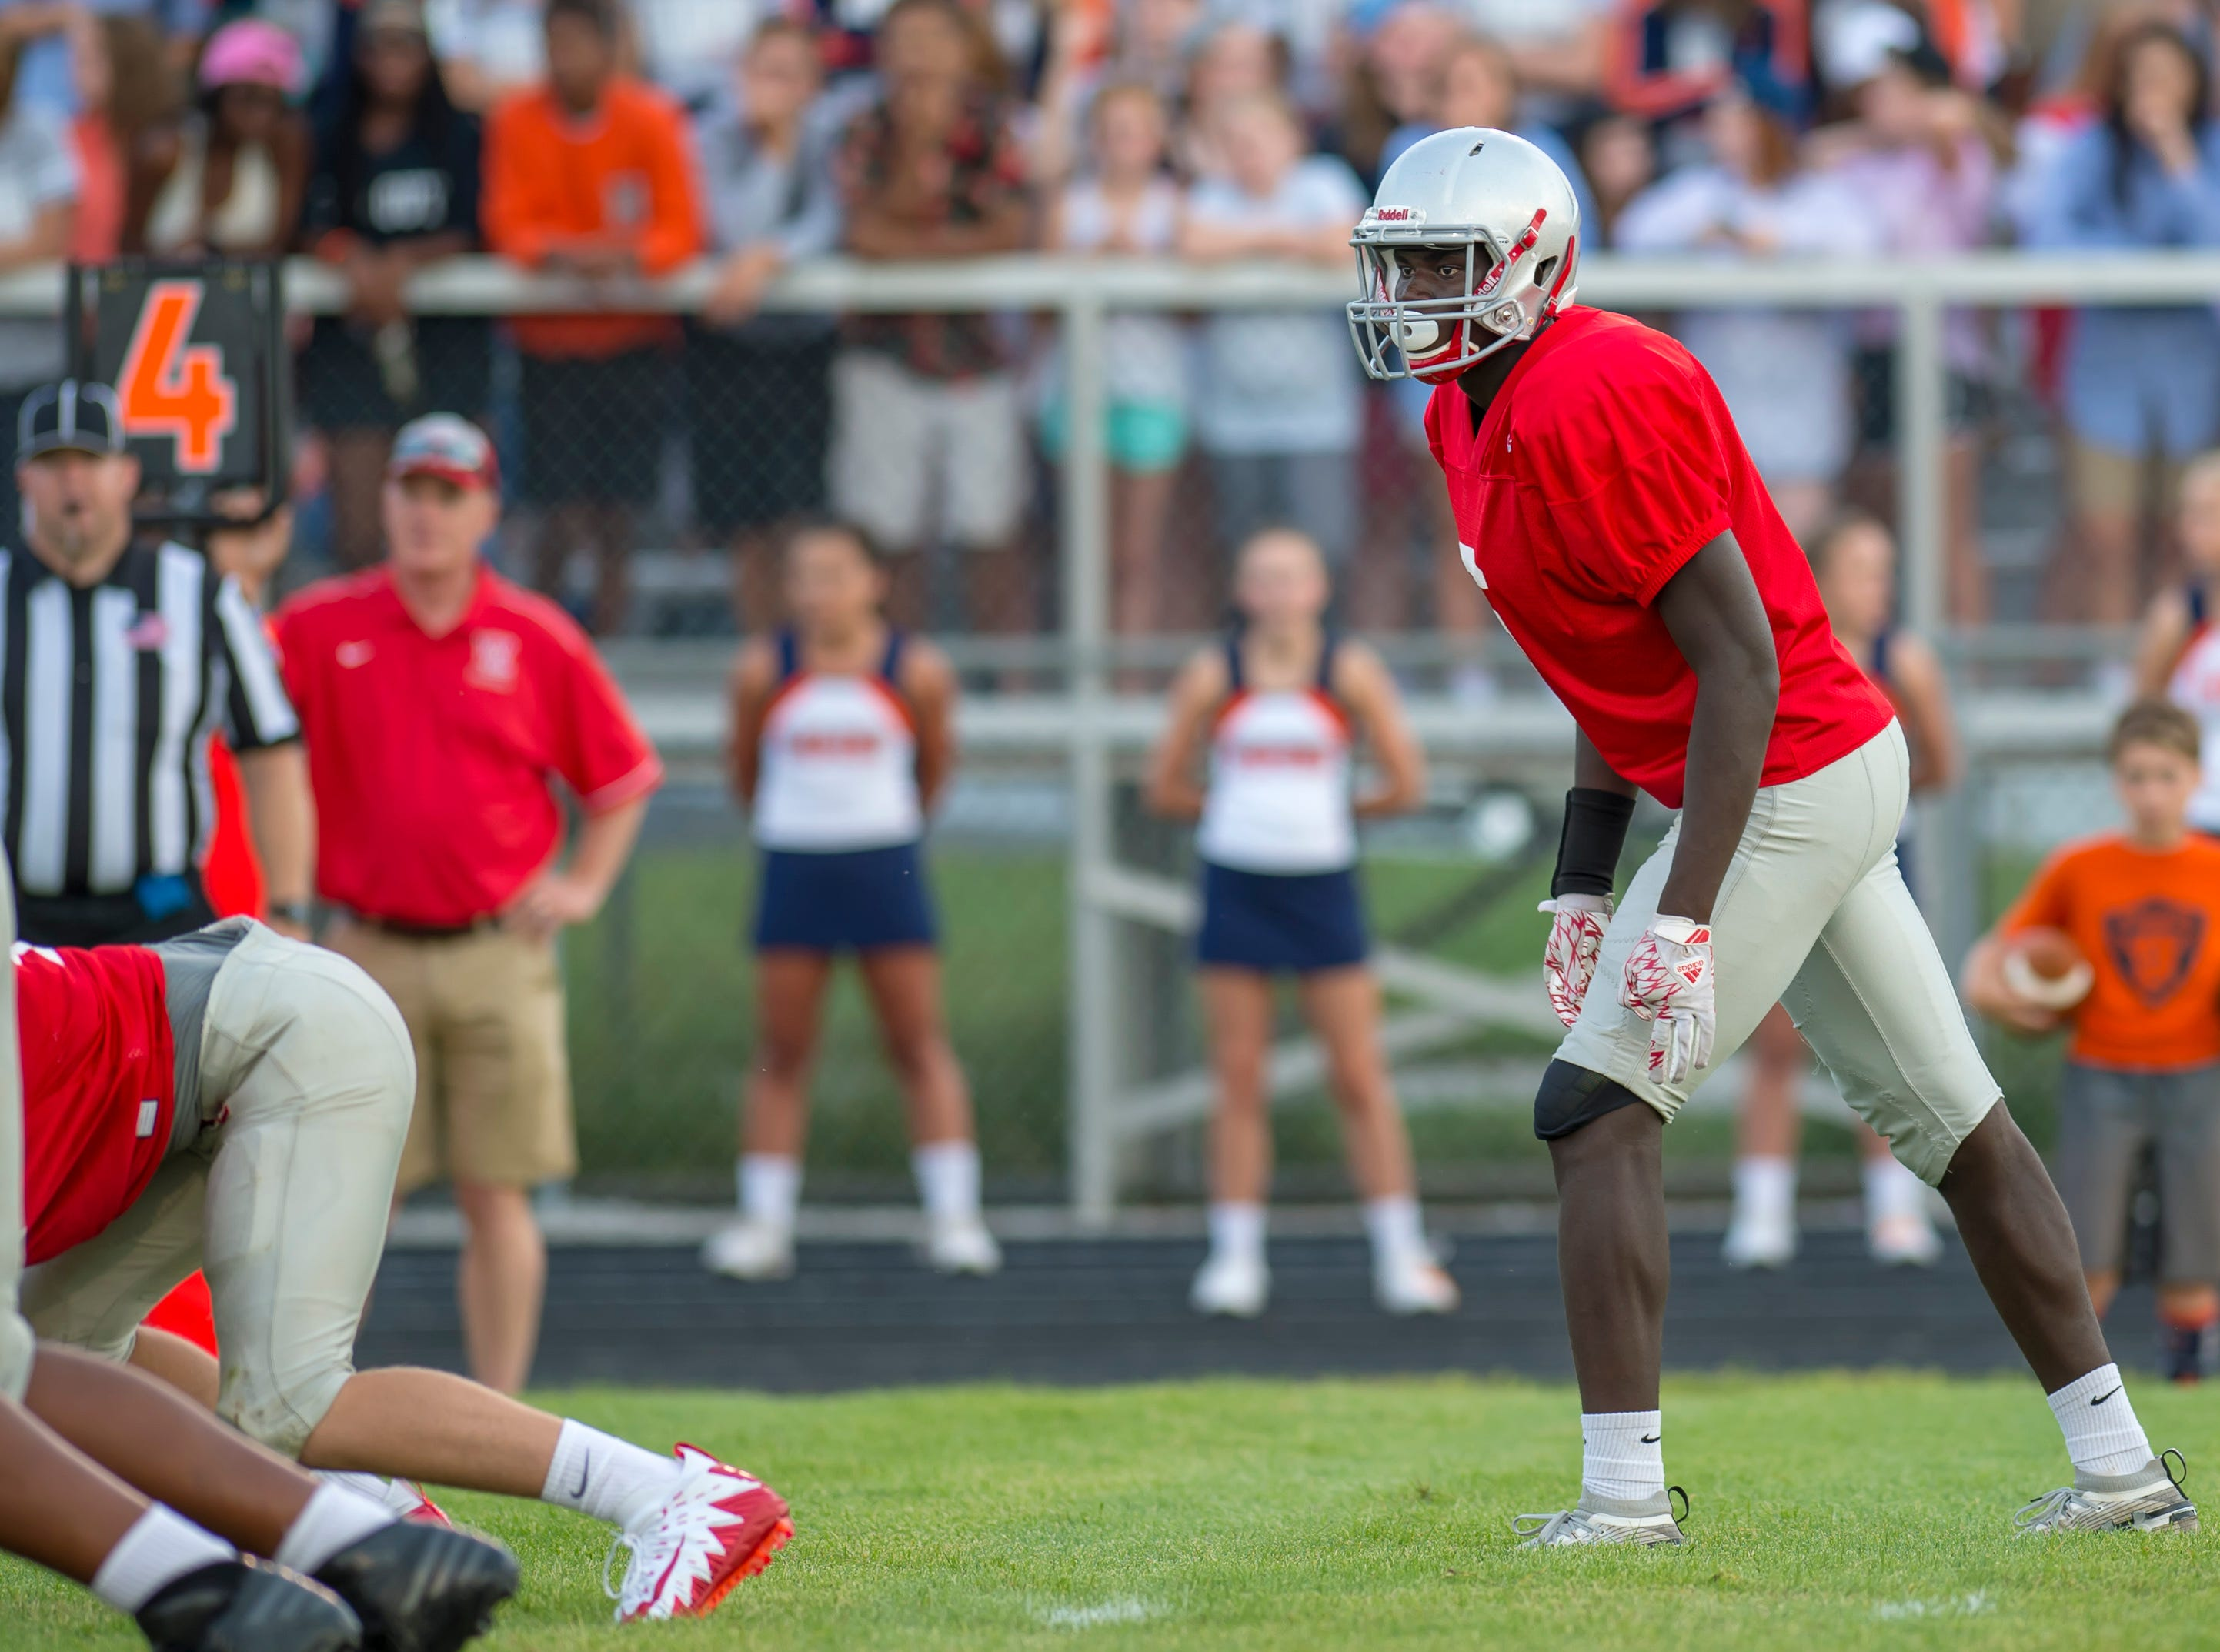 Nelson Mbongo surveys the Harrison backfield in the football scrimmage between the Harrison Raiders and the West Lafayette Red Devils from Gordon Straley Field